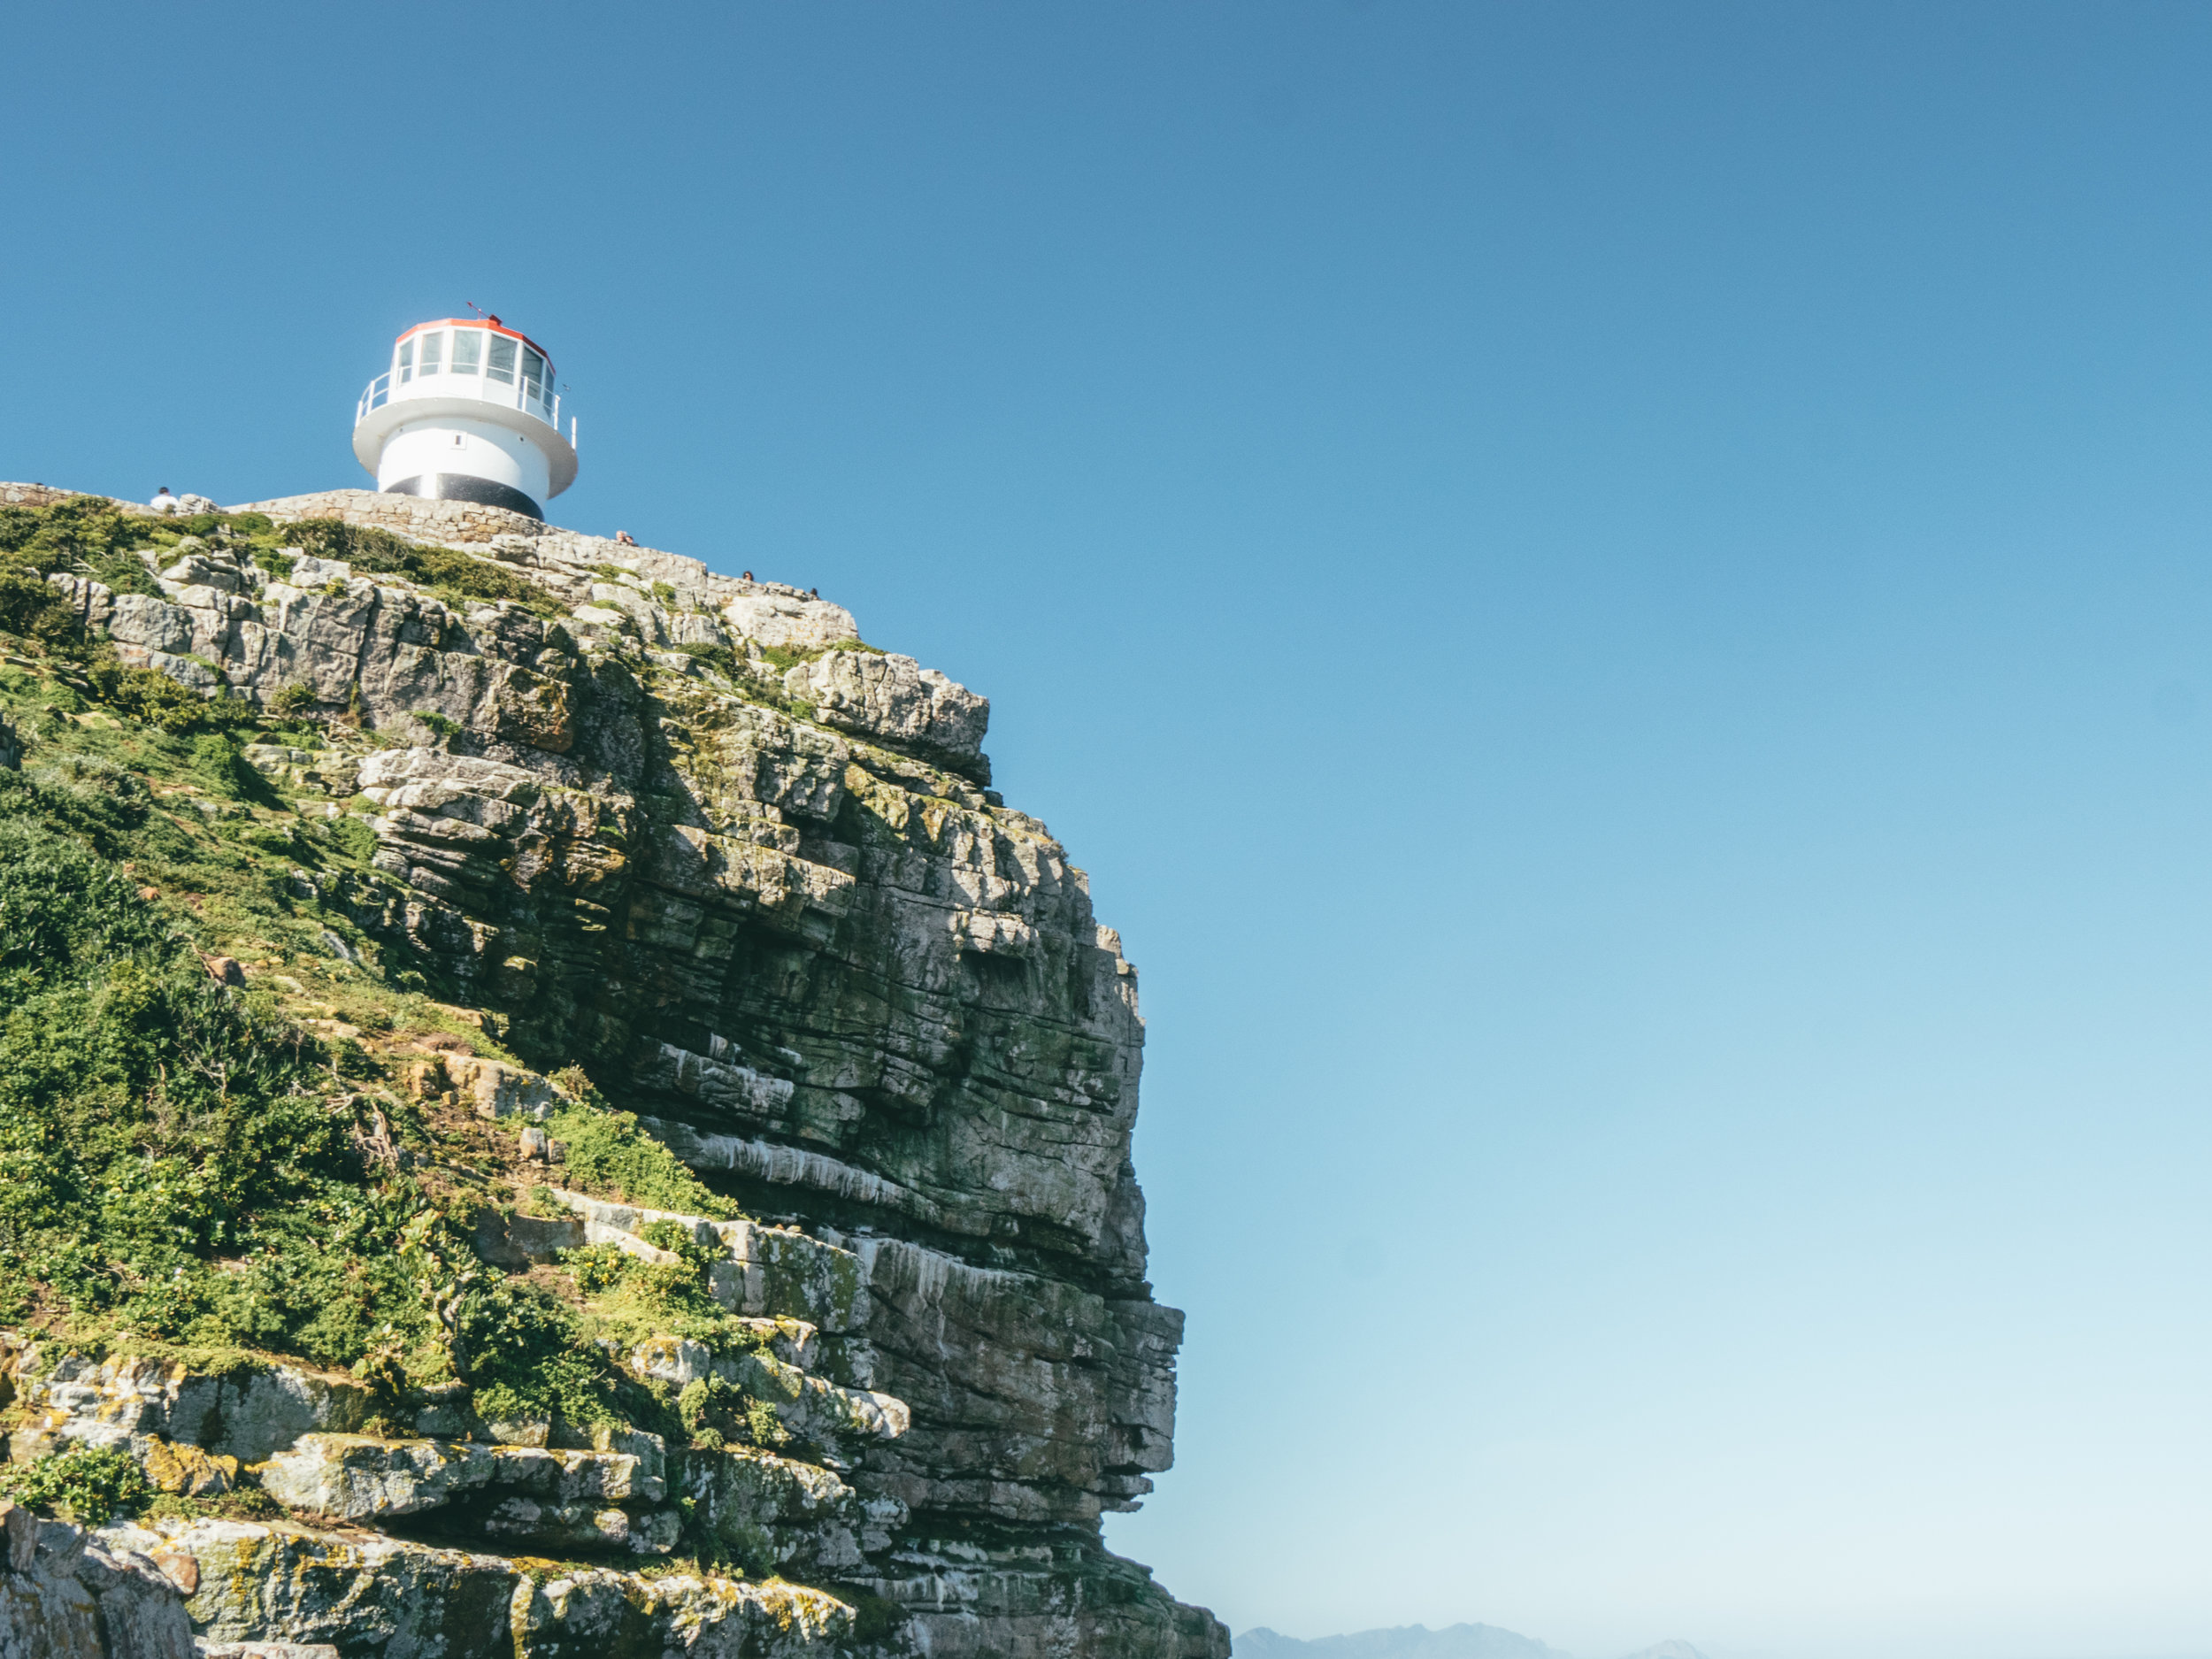 Cape of Good Hope - Cape of Good Hope & Chapman's Peak Drive, South AfricaOctober 2018